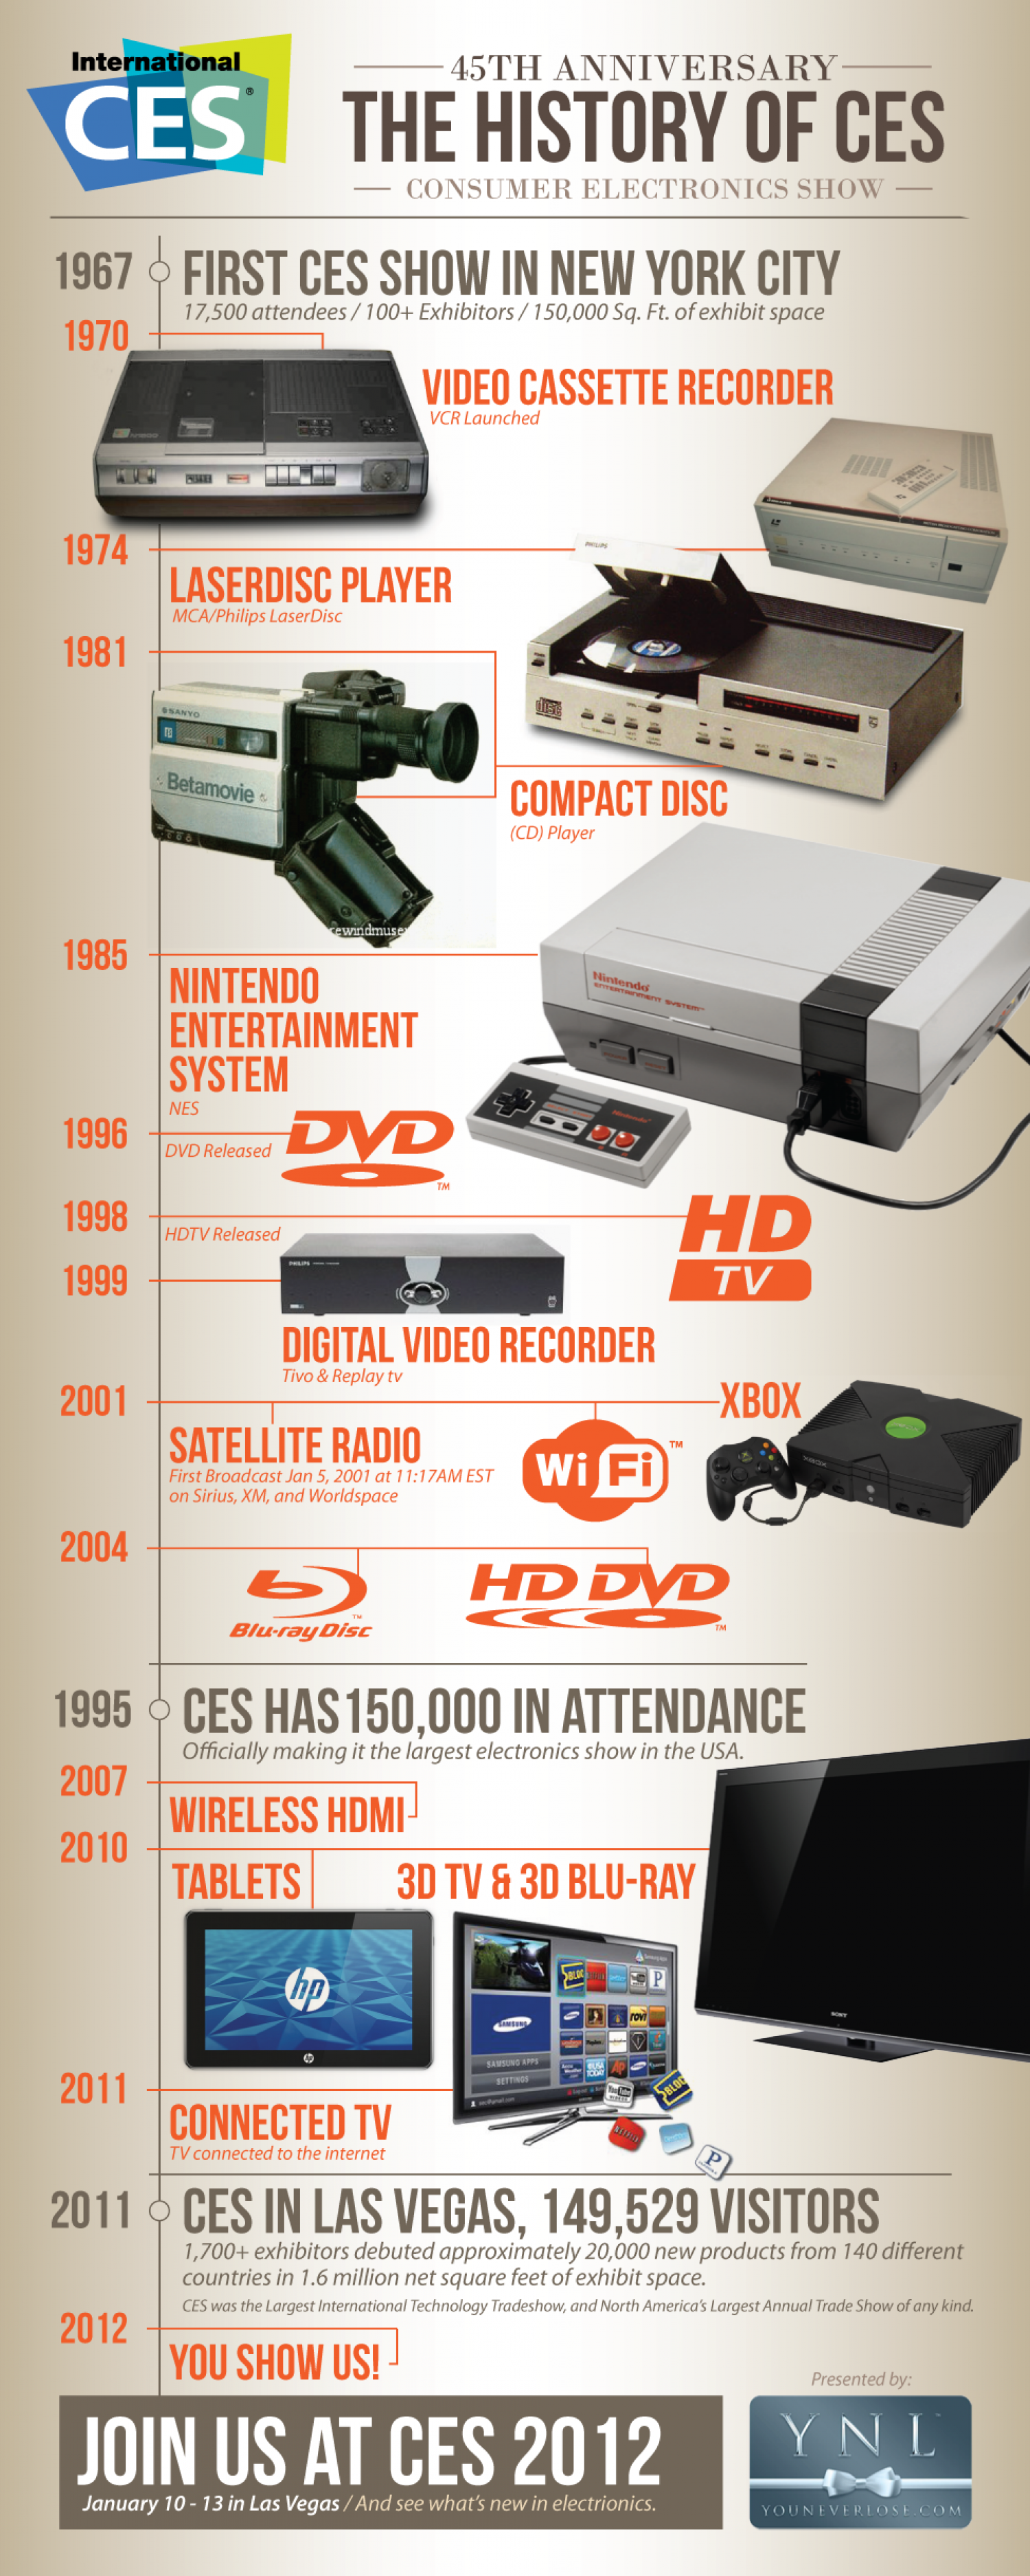 The History of CES Infographic